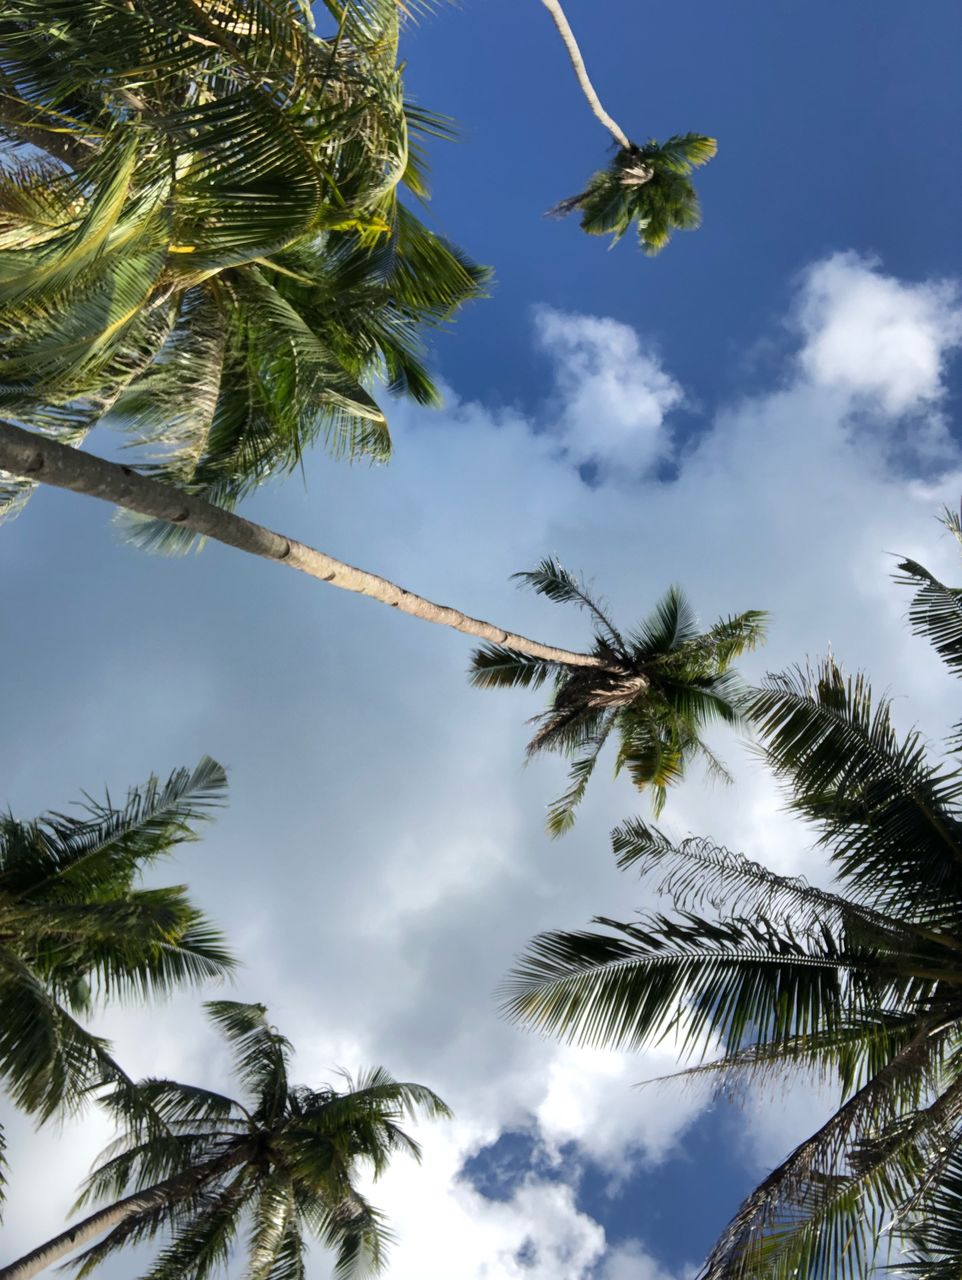 tree, plant, low angle view, sky, palm tree, tropical climate, cloud - sky, growth, nature, beauty in nature, day, no people, tree trunk, trunk, branch, tranquility, leaf, outdoors, tall - high, coconut palm tree, palm leaf, tropical tree, directly below